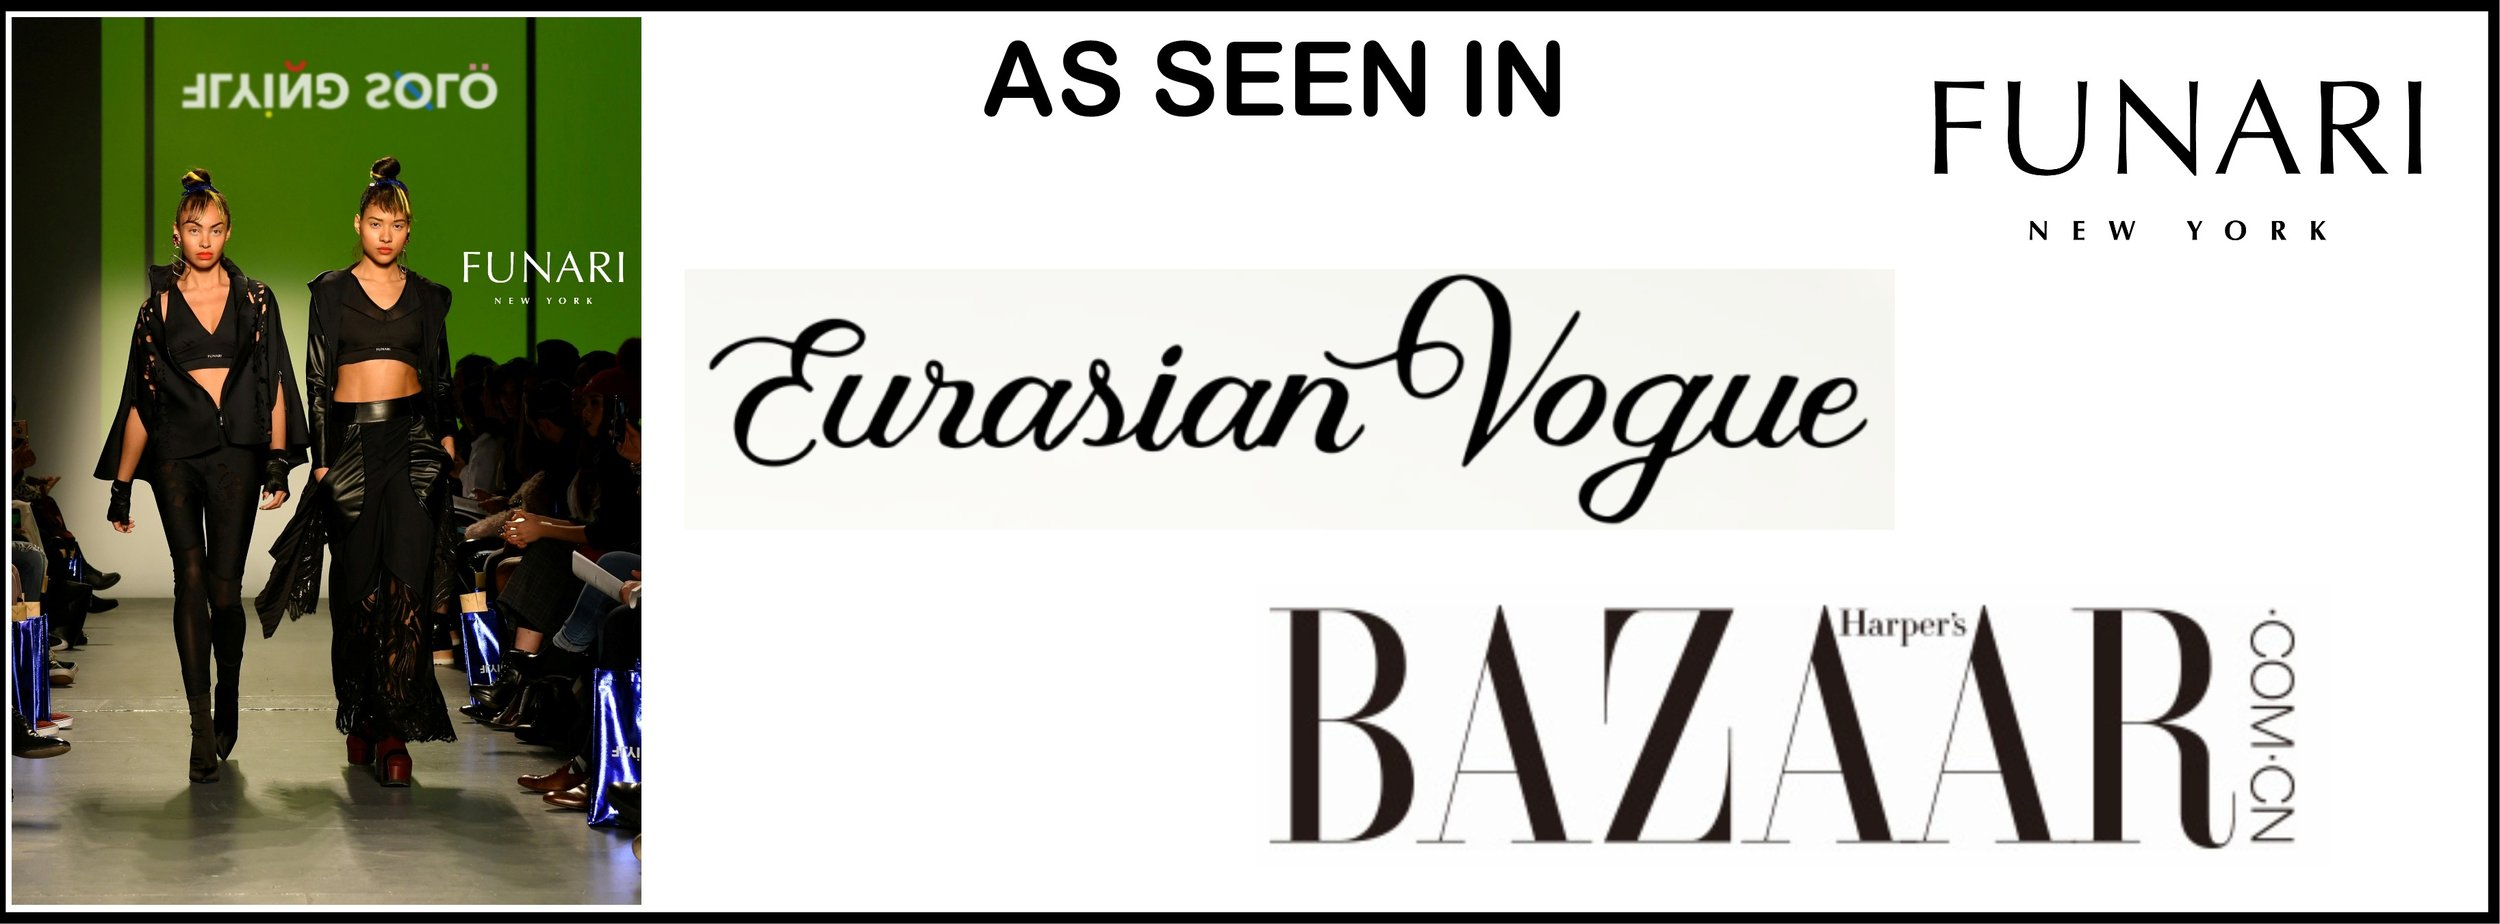 harpers bazaar and vogue.jpg